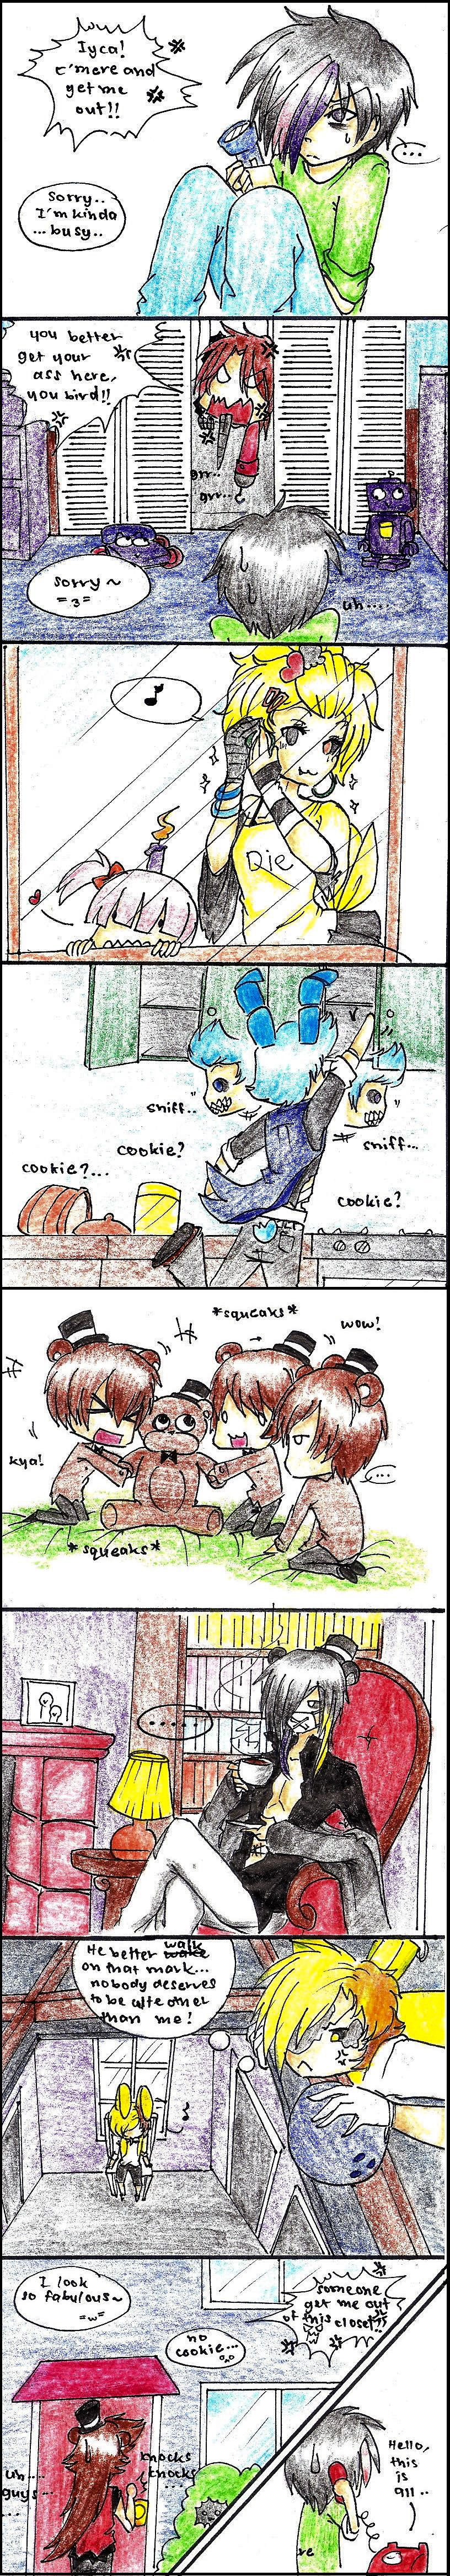 Fnaf 4- behind the trailer.. by karinchan97 on DeviantArt